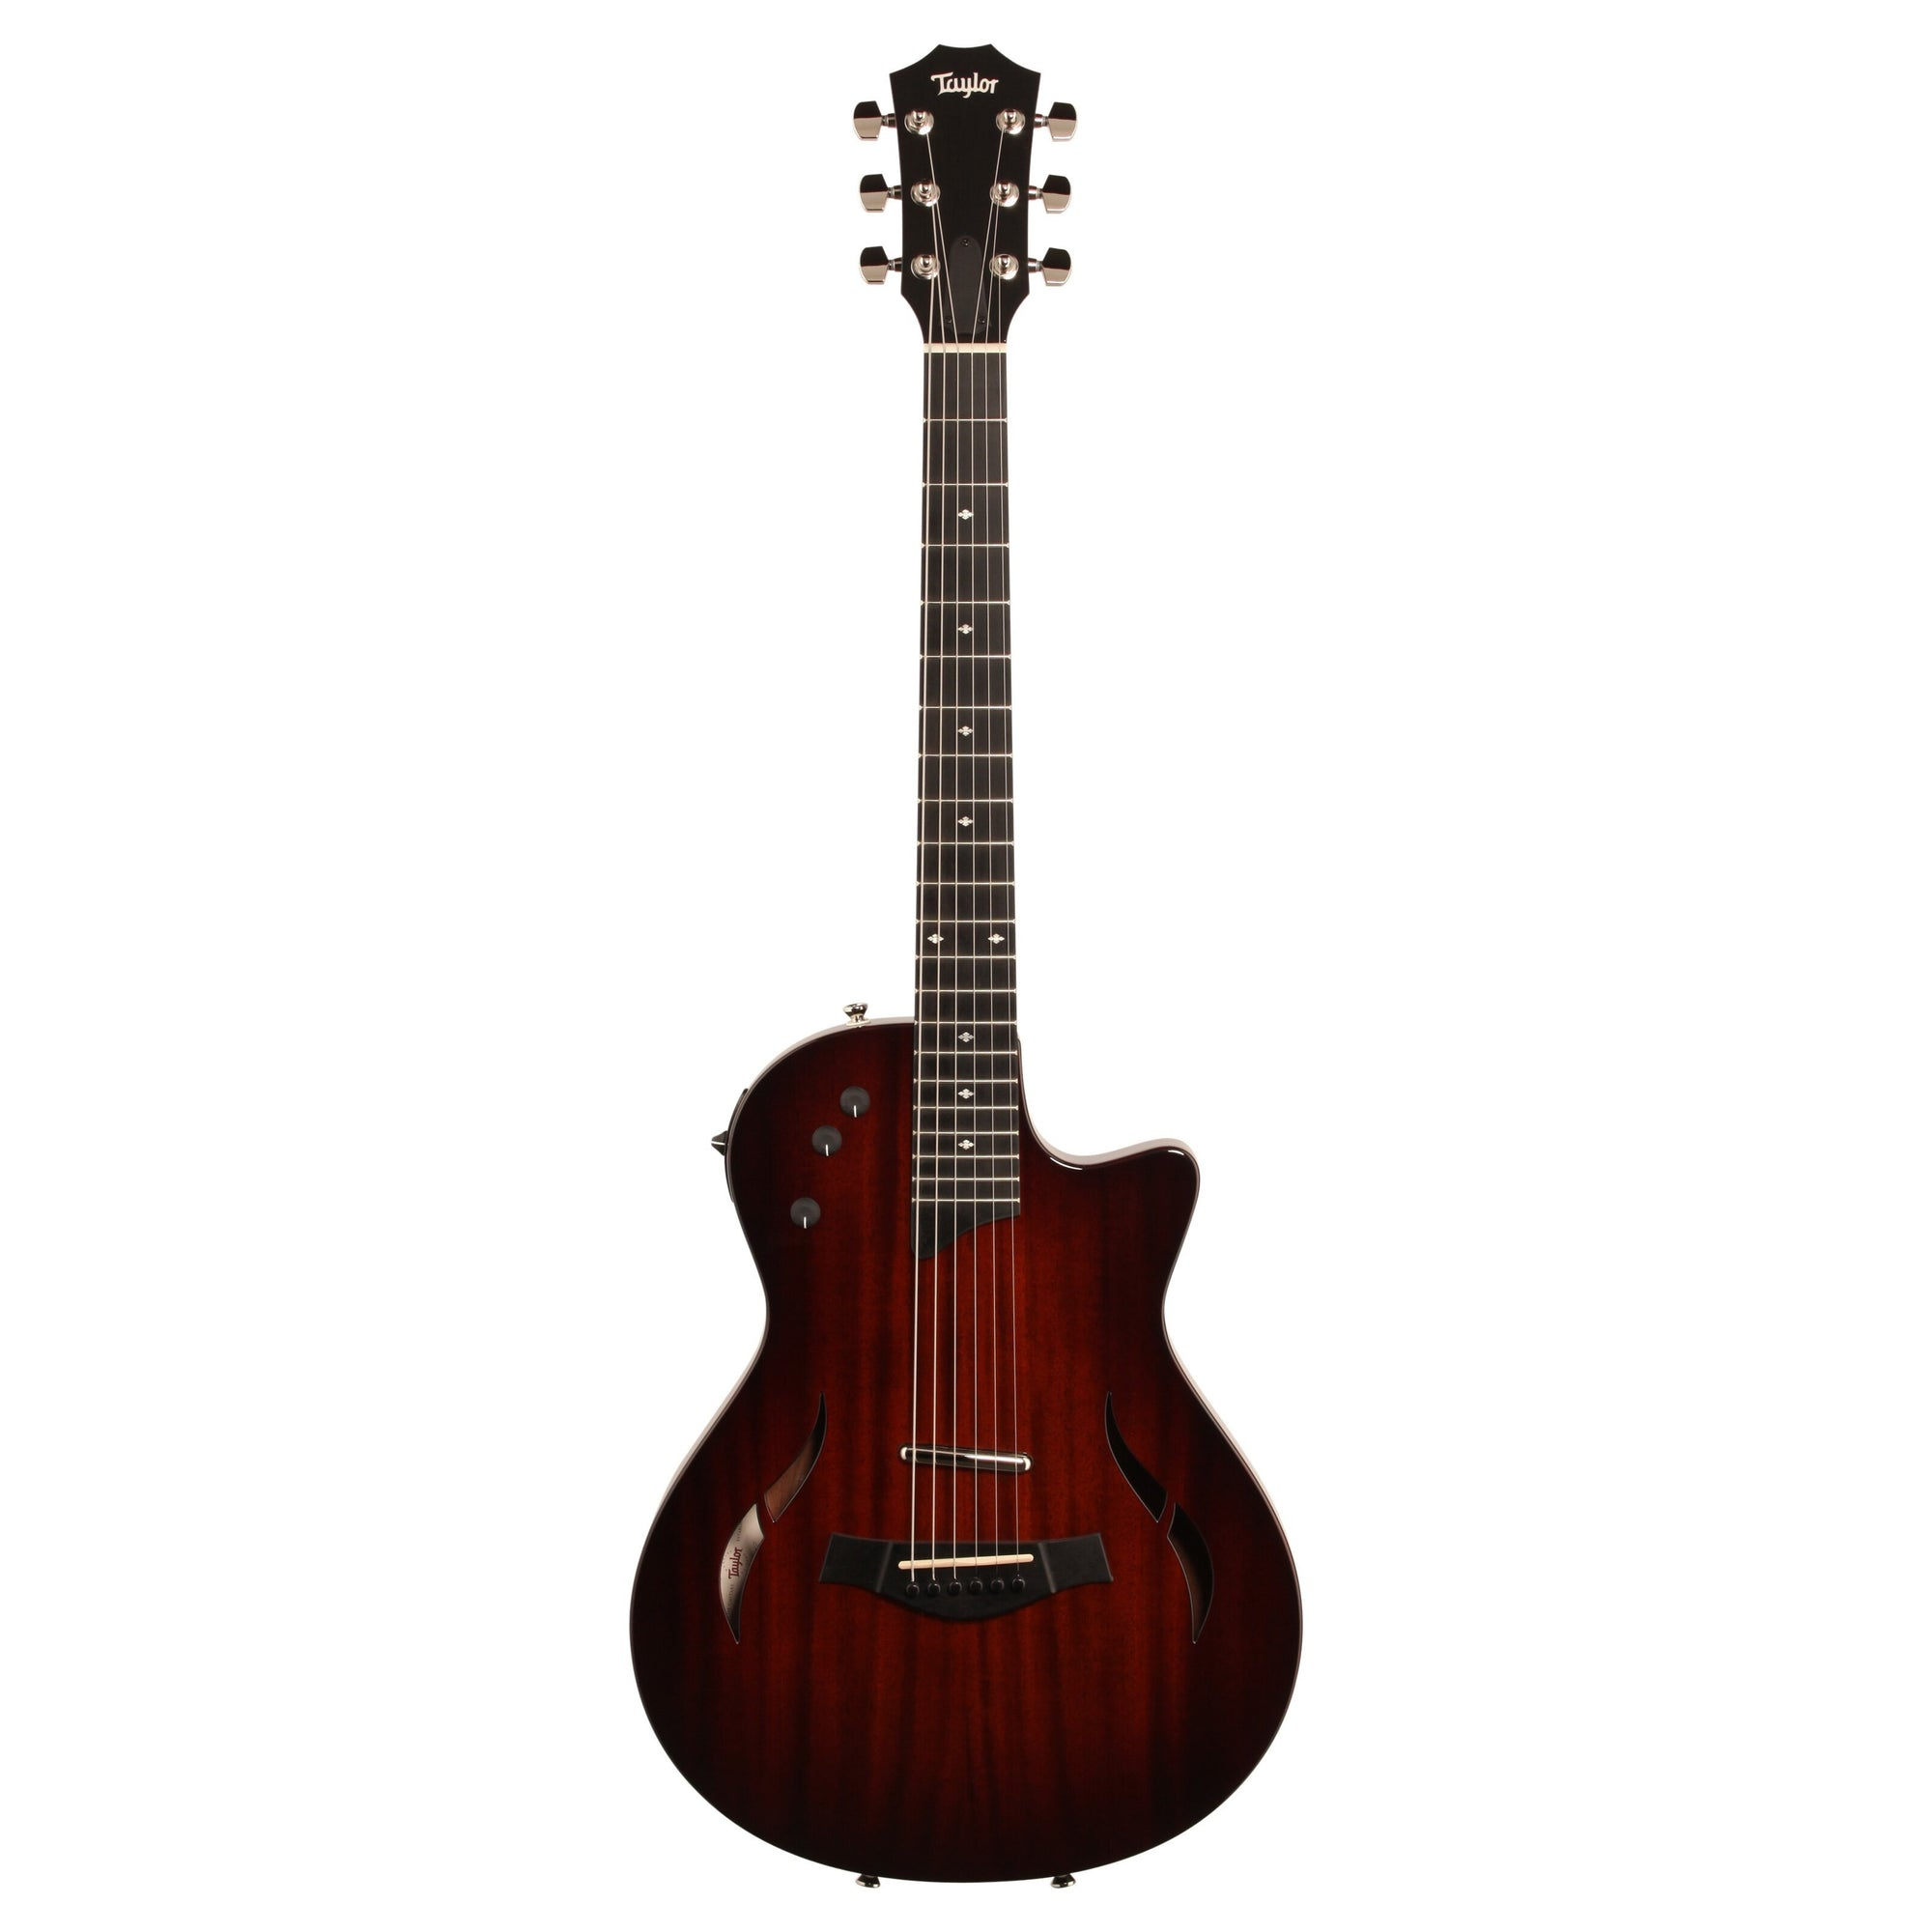 Taylor T5z Classic Deluxe Electric Guitar, Shaded Edge Burst